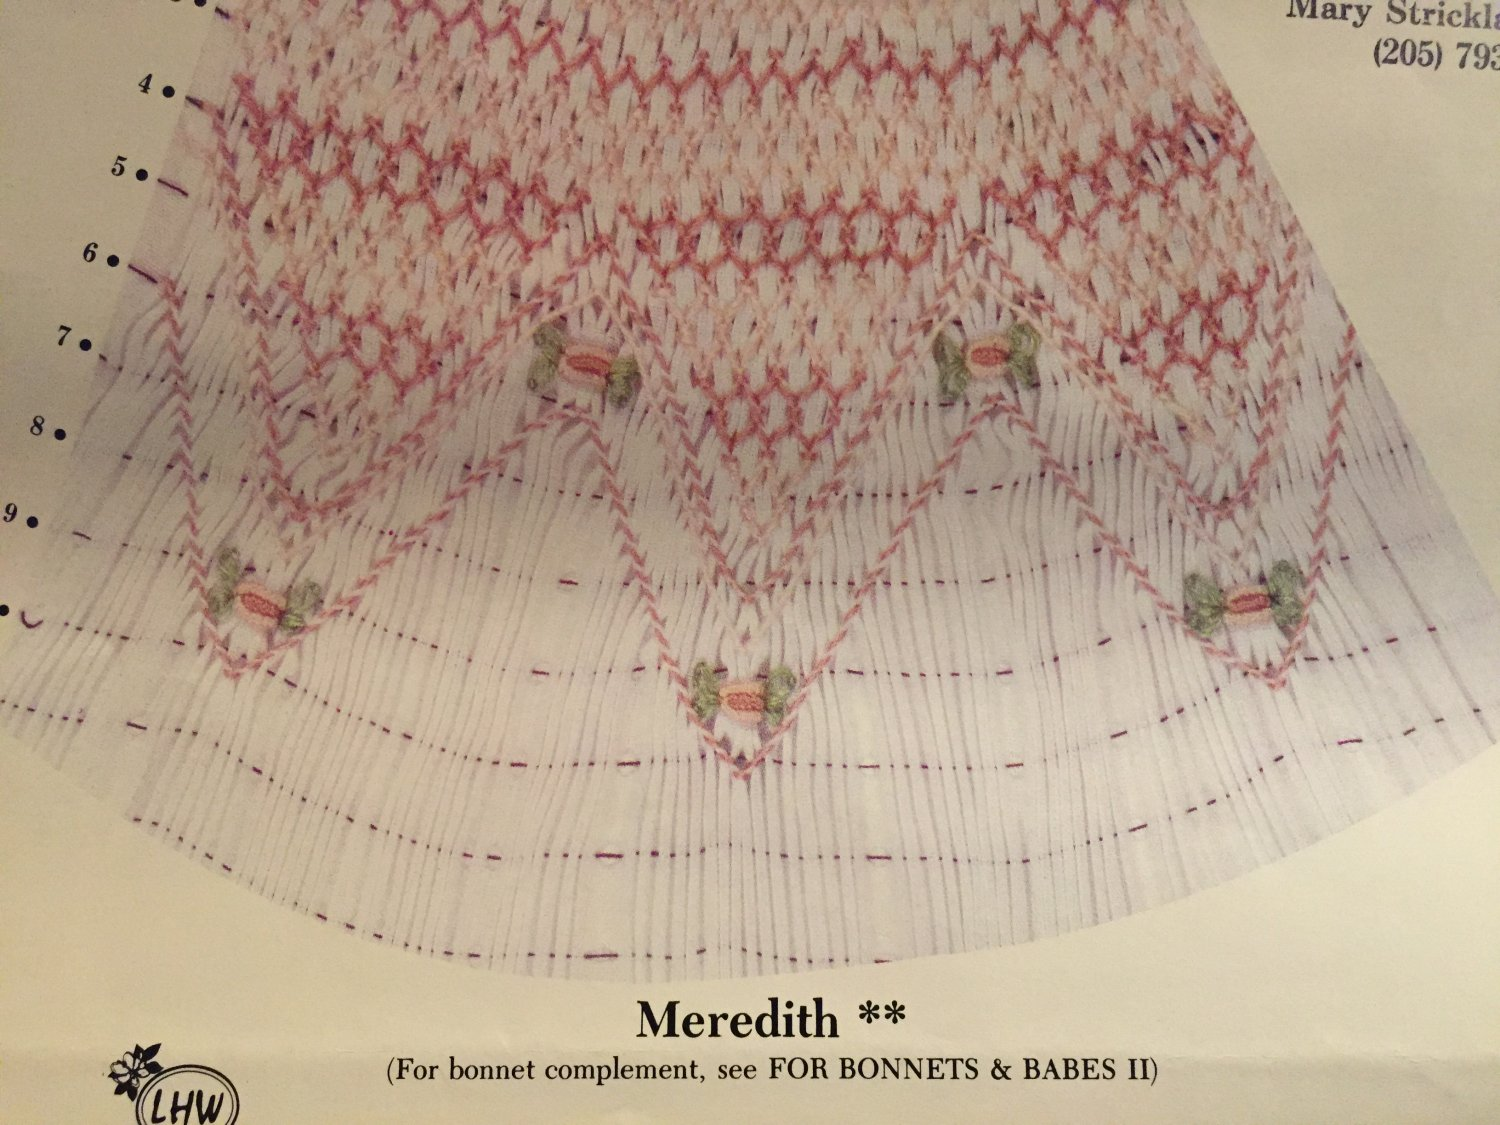 Meridith Smocking plate LHW Creations